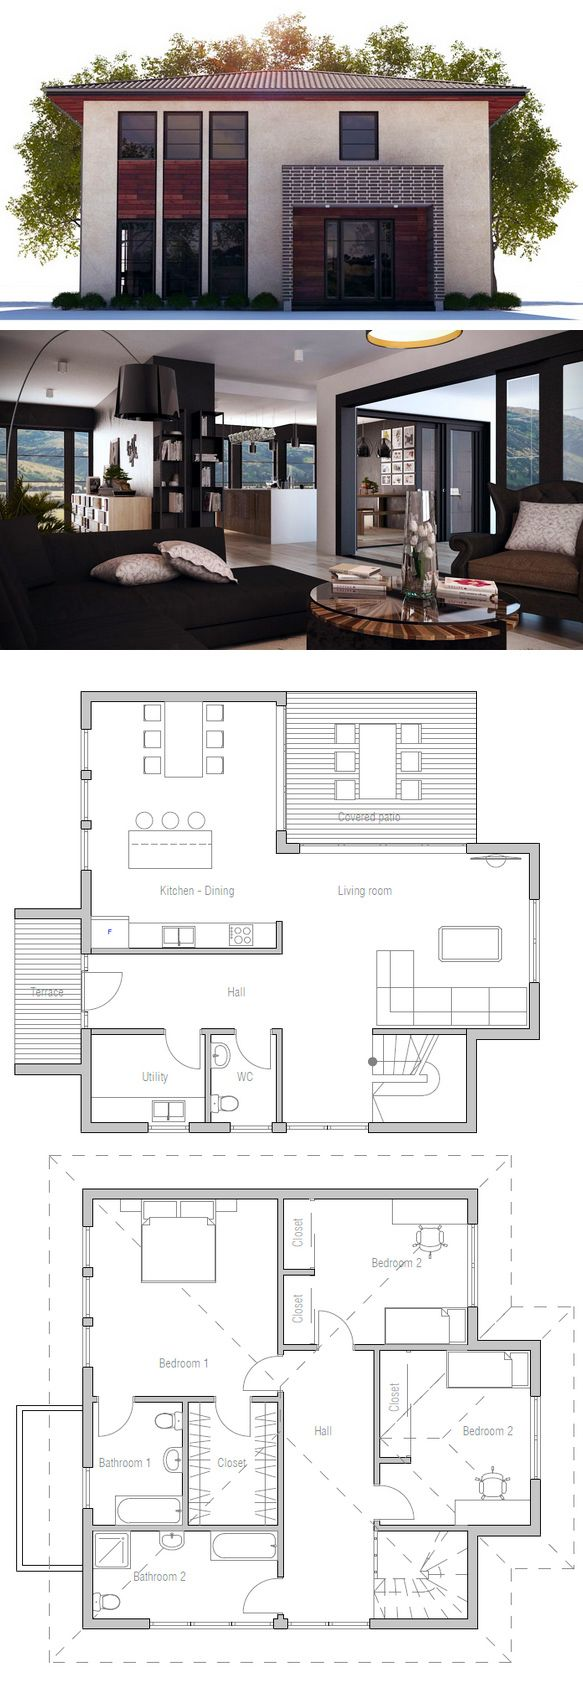 146 best house planning images on Pinterest